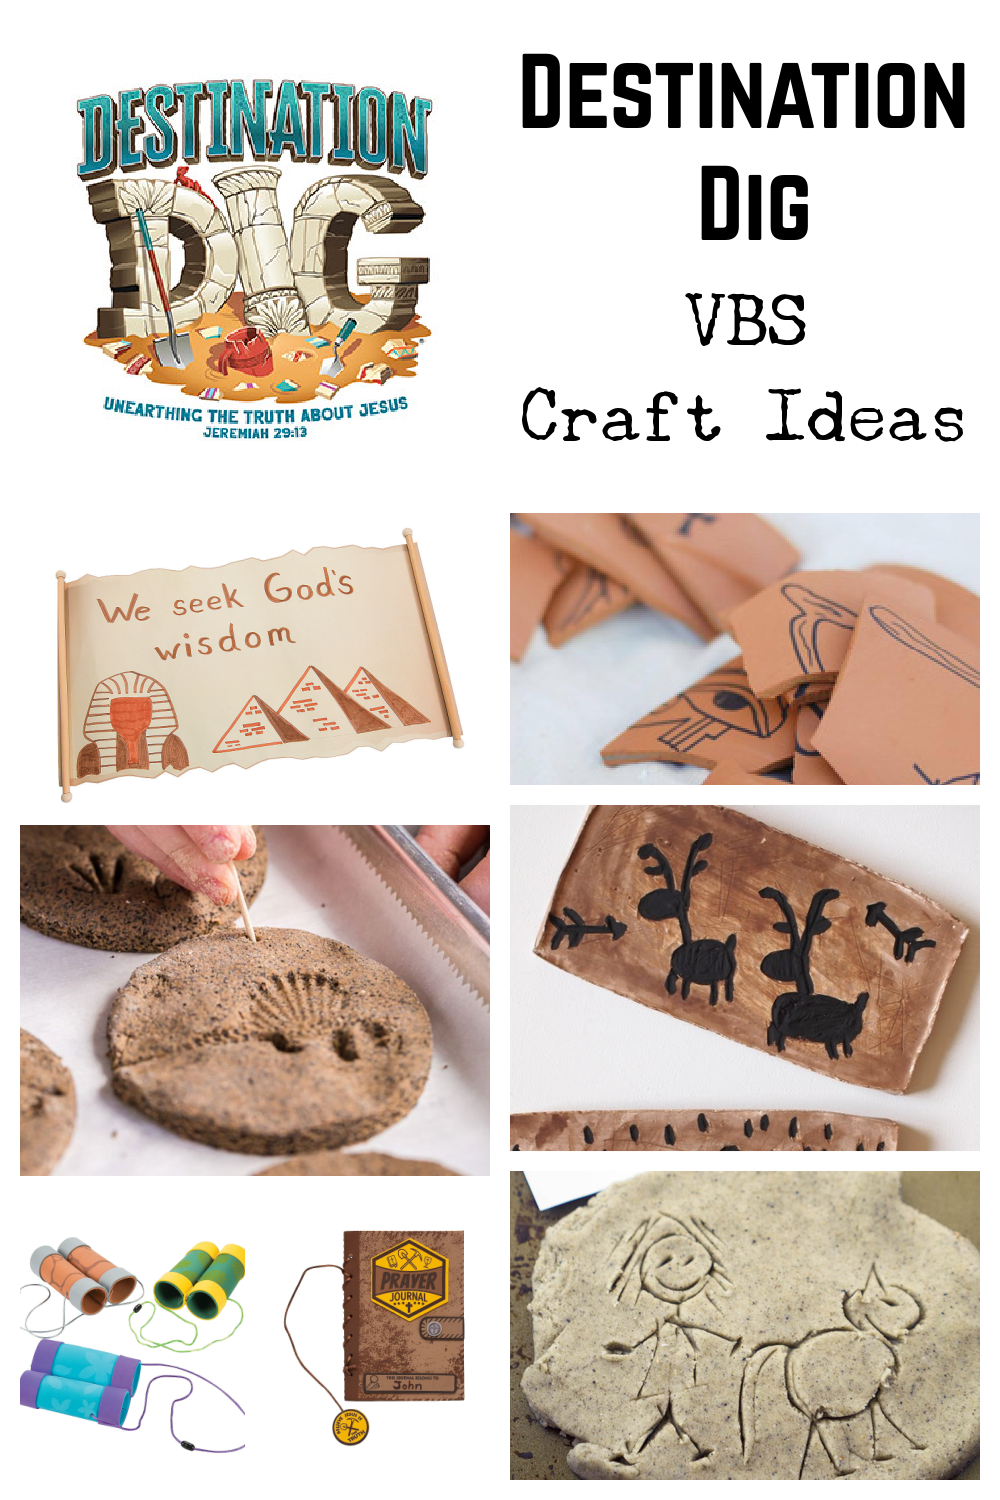 Destination Dig VBS Craft Ideas